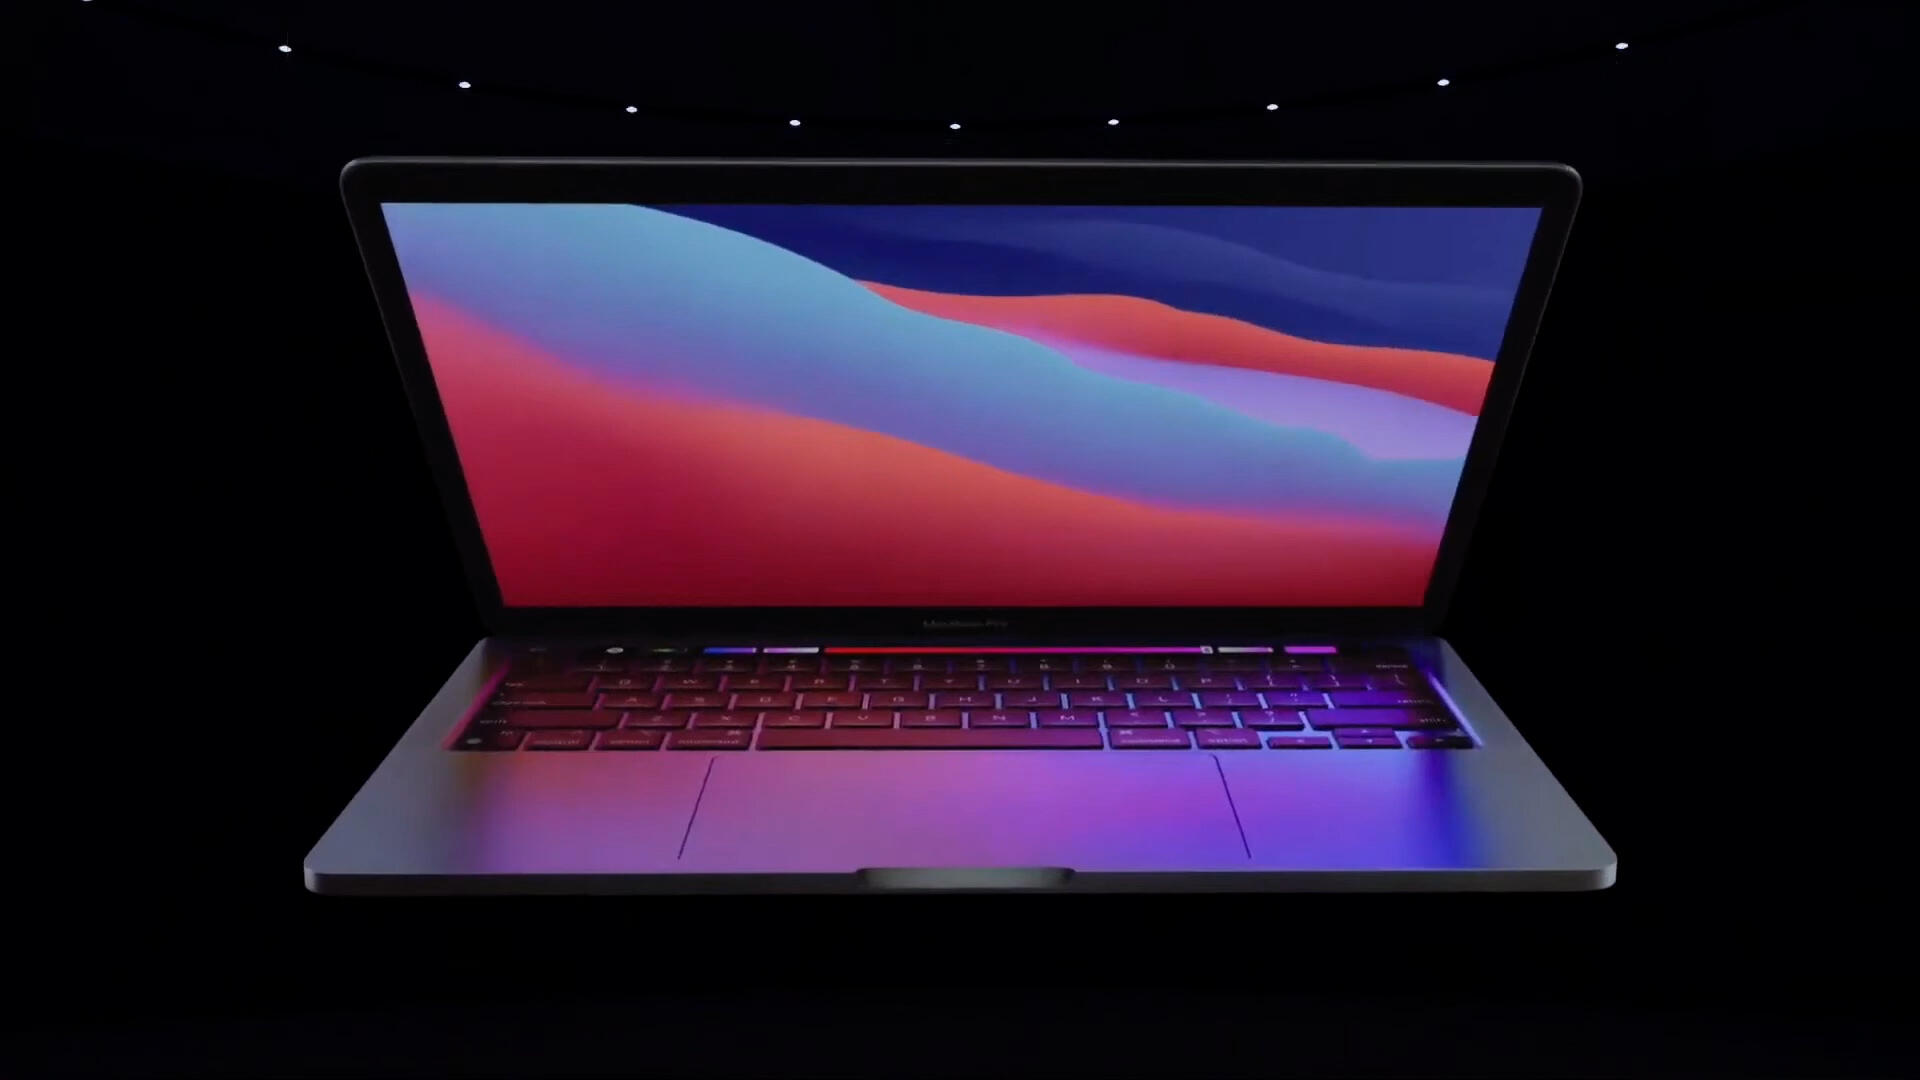 Video: Apple's new 13-inch MacBook Pro revealed with M1 chip